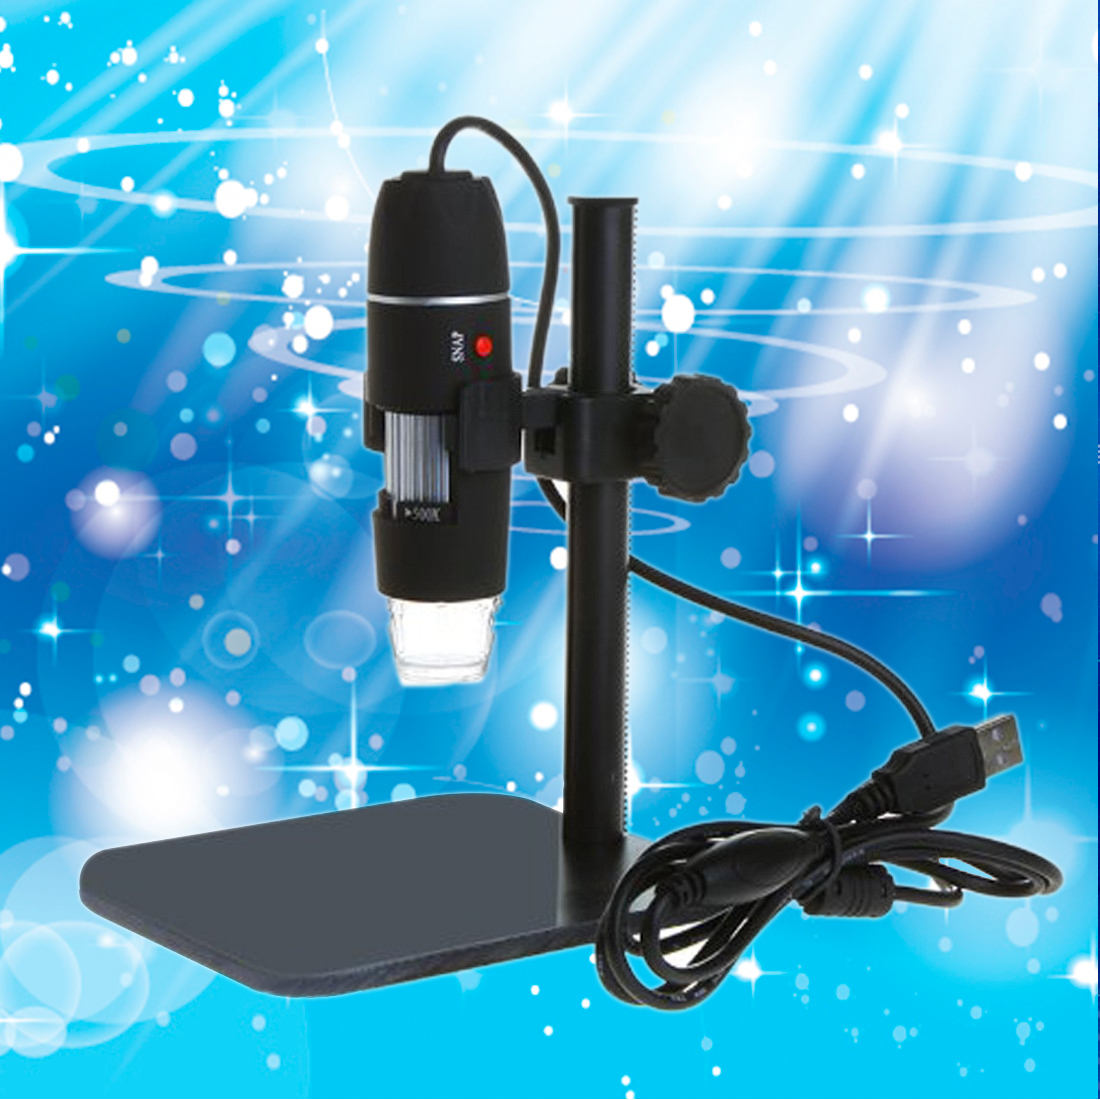 Practical Electronics 5MP USB 8 LED Digital Camera Microscope Endoscope Magnifier 50X~500X Magnification Measure